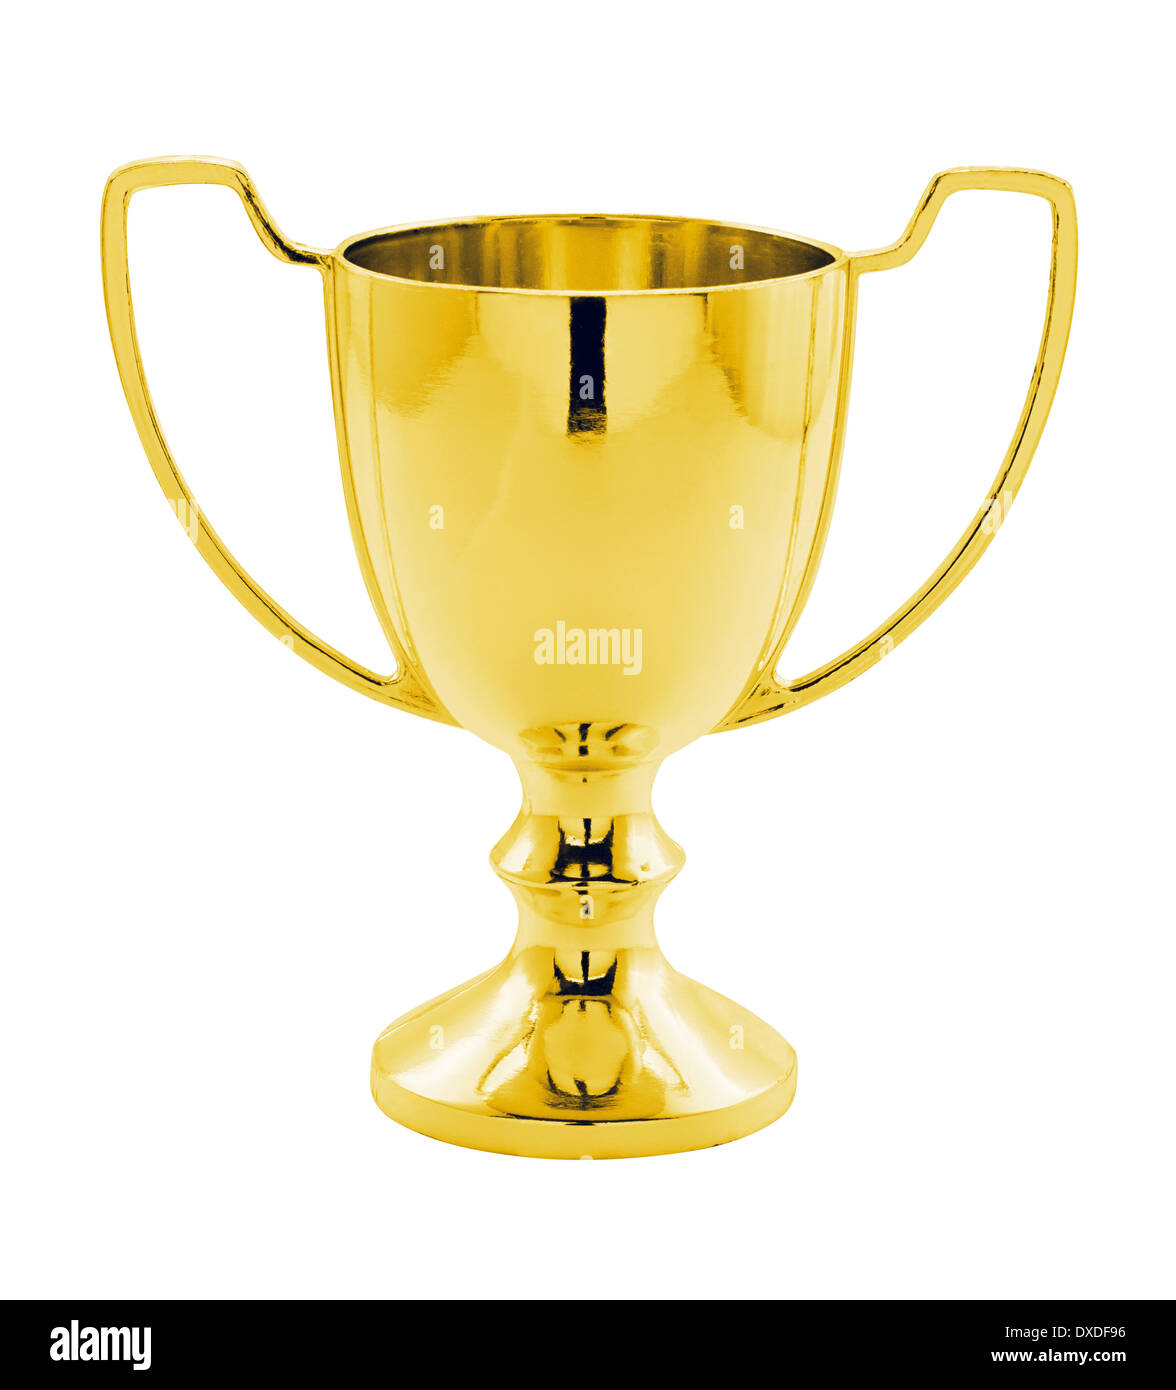 A Gold Winners trophy against a white background great concept for achievement, success or winning a competition or award. - Stock Image